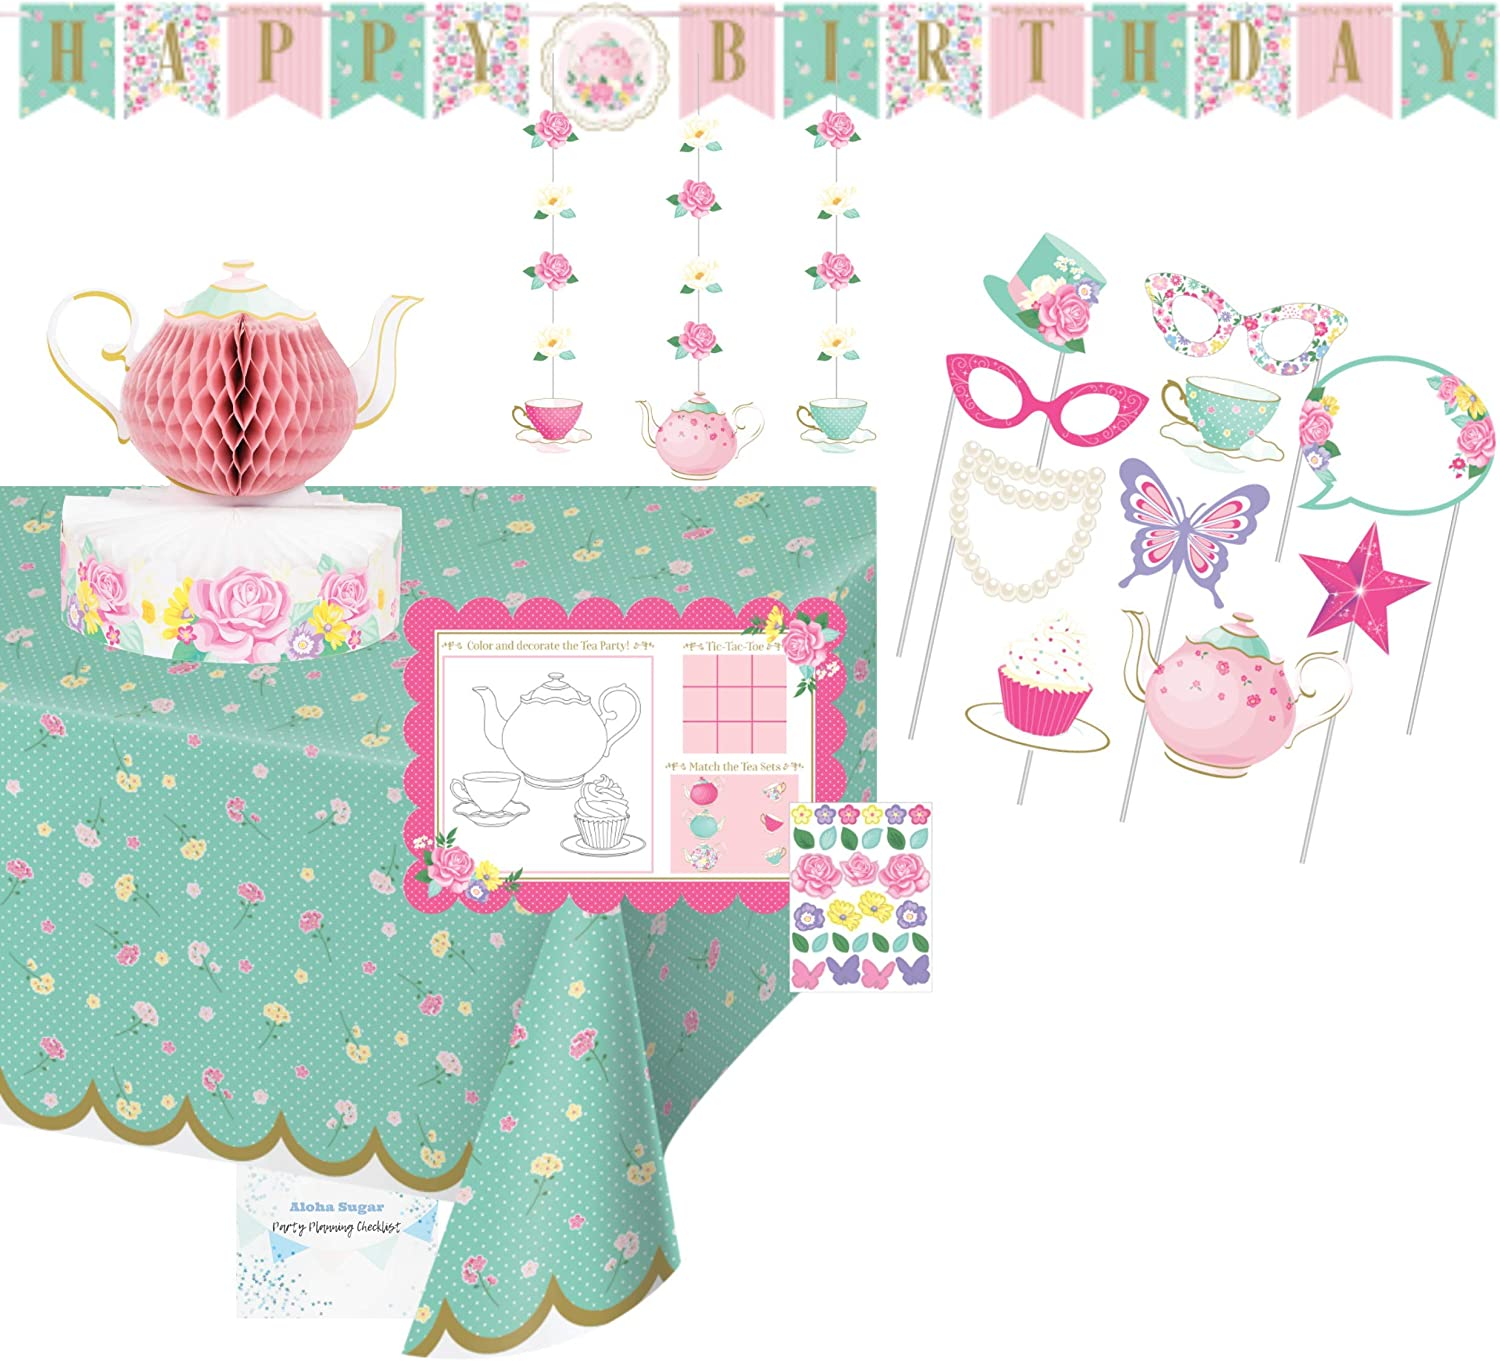 Floral Tea Party Supplies and Decorations - Includes Tea Party Birthday Banner, Hanging Decorations and Photo Booth Props - Tablecloth, Centerpiece and Activity Placemats - Perfect Floral Tea Party Birthday Decorations!